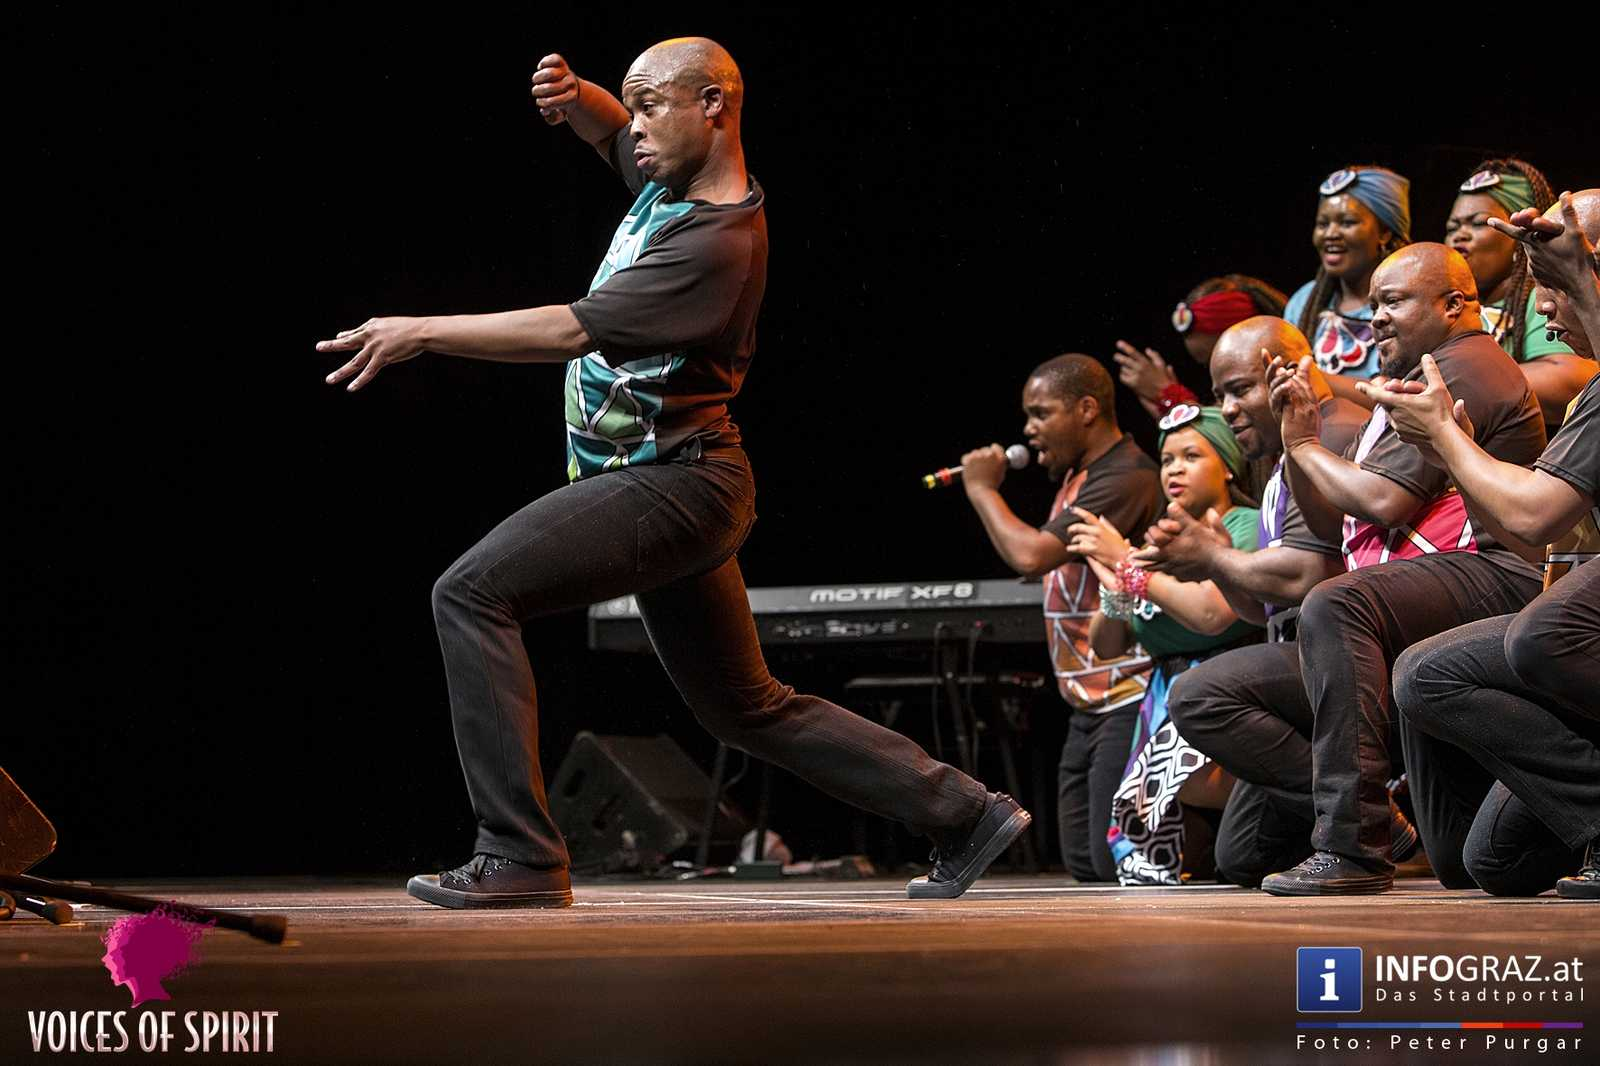 soweto gospel choir internationales chorfestival statdthalle graz voices of spirit eroeffnung festivals 2016 061